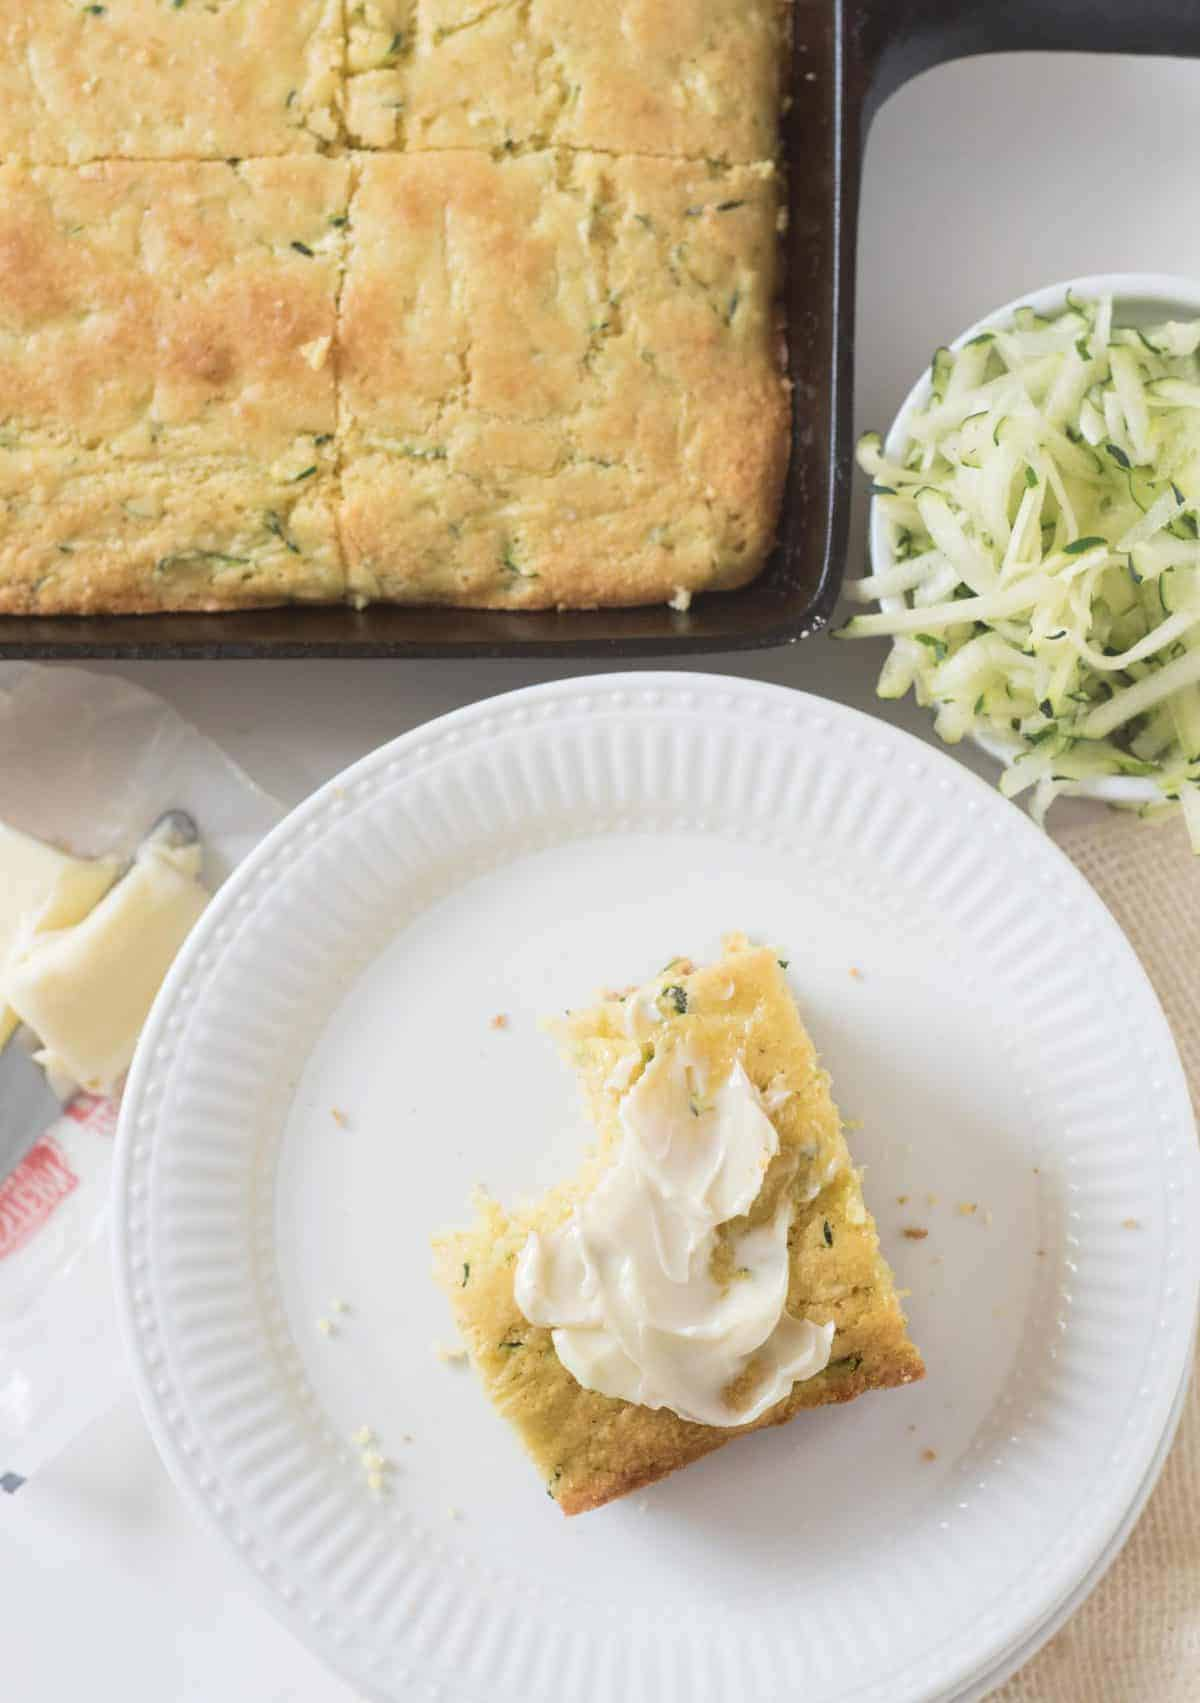 Light and fluffy zucchini cornbread that is sweet and moist thanks to the addition of grated zucchini, on the table in around 30 minutes!